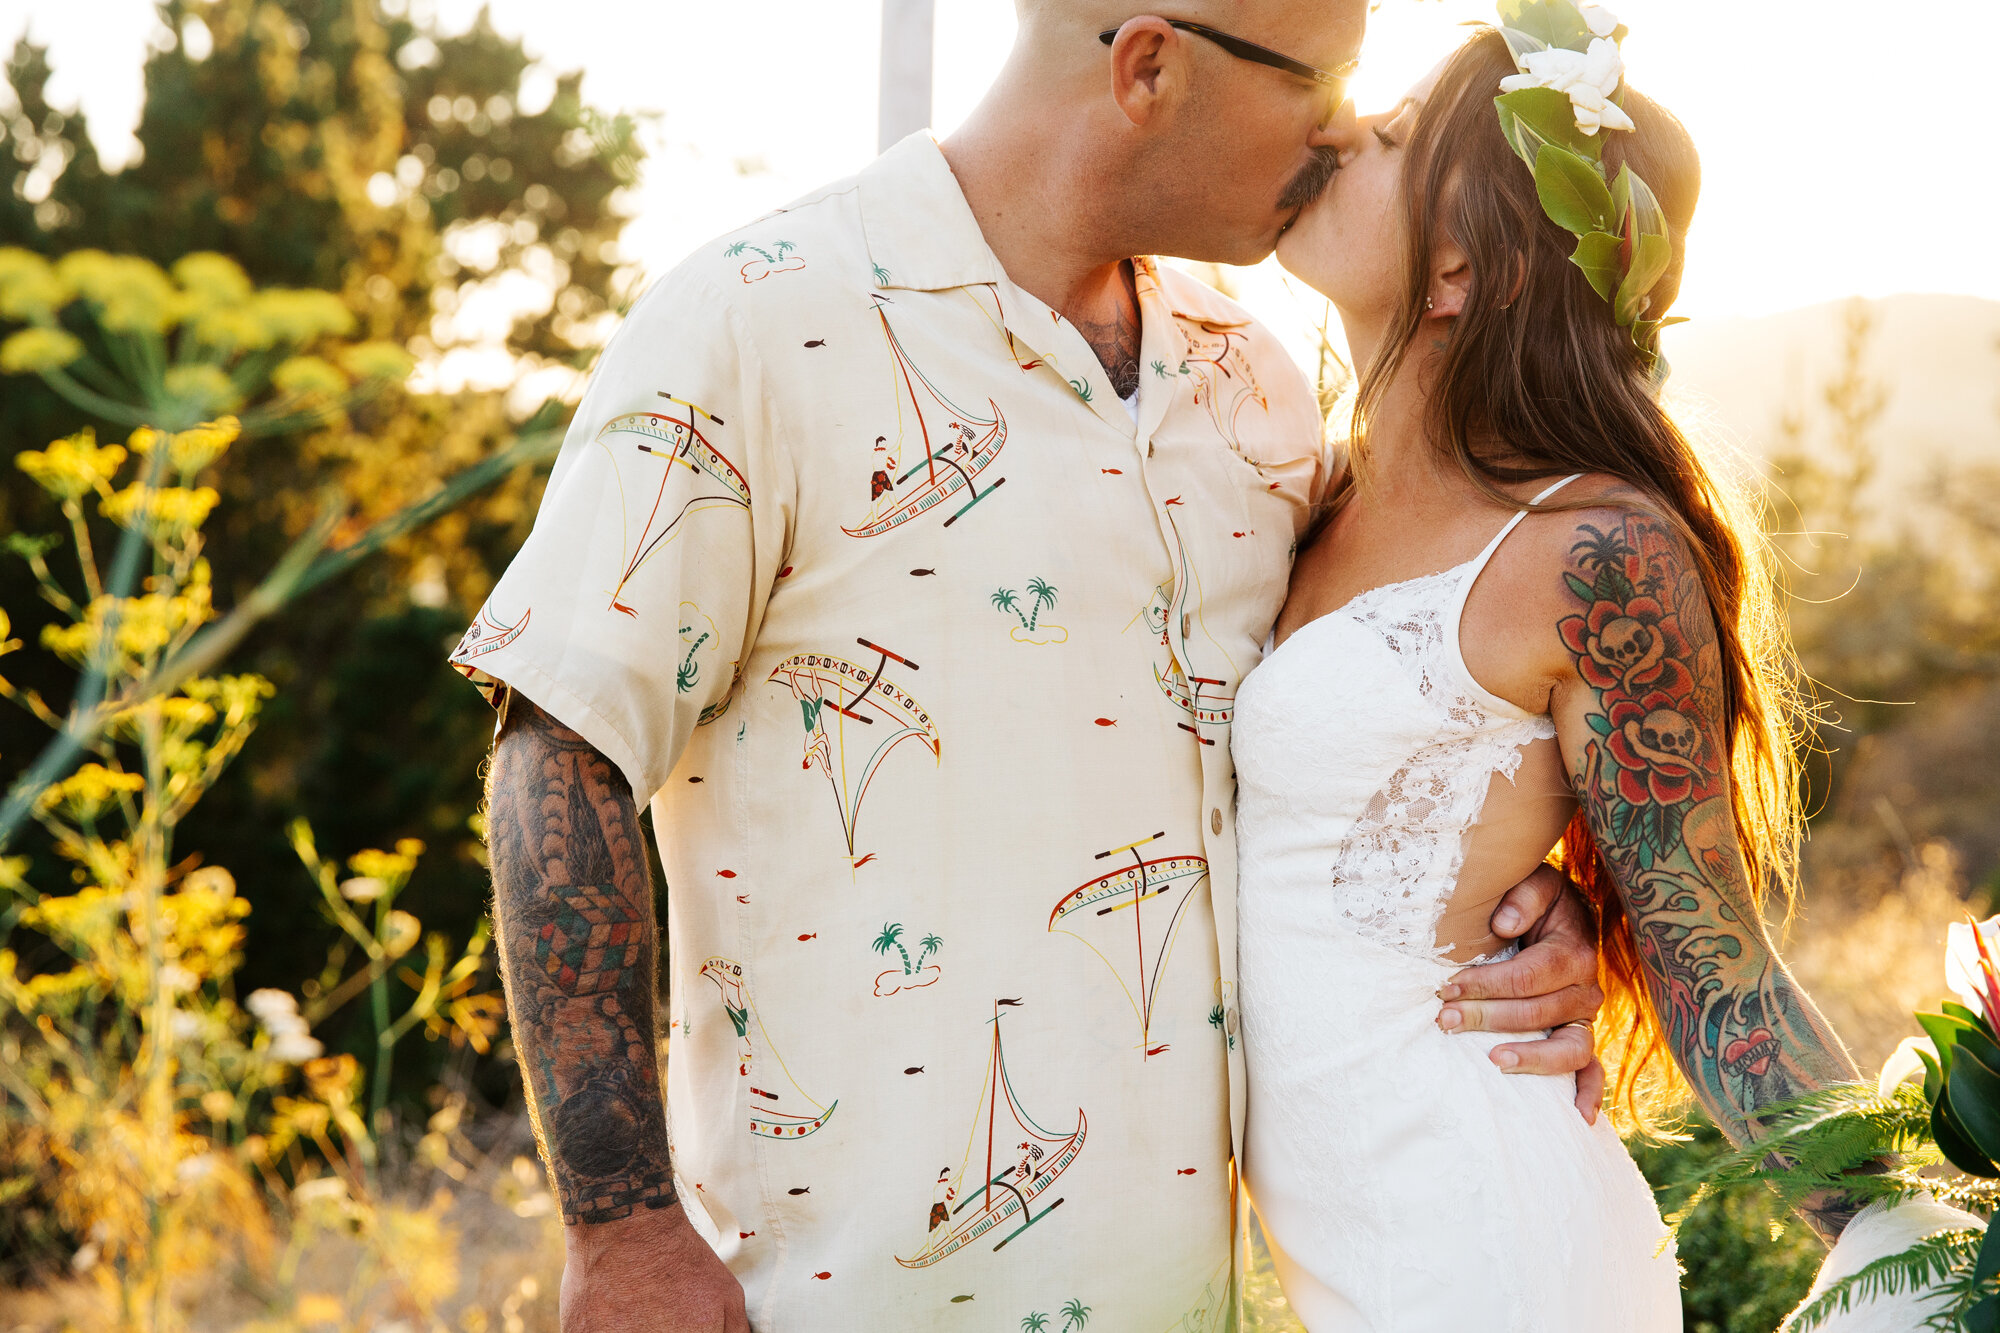 California Tiki Wedding at Shelldance Orchid Gardens